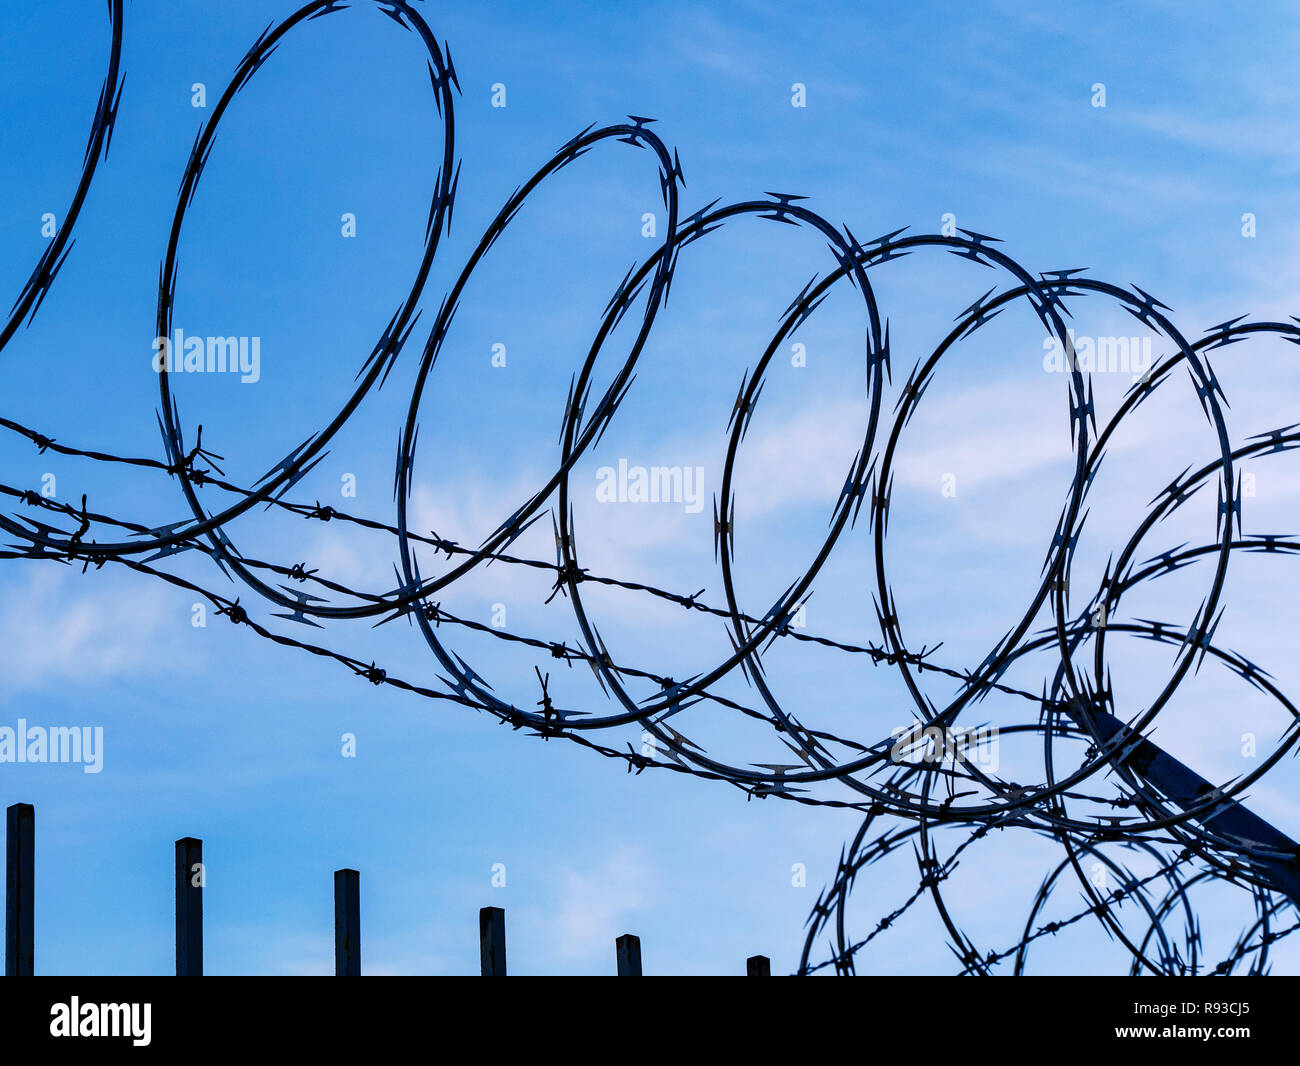 Coil Helix Stock Photos Images Alamy Rj22 Jack Wiring Diagram Razor Wire Against Blue Sky And Clouds Image